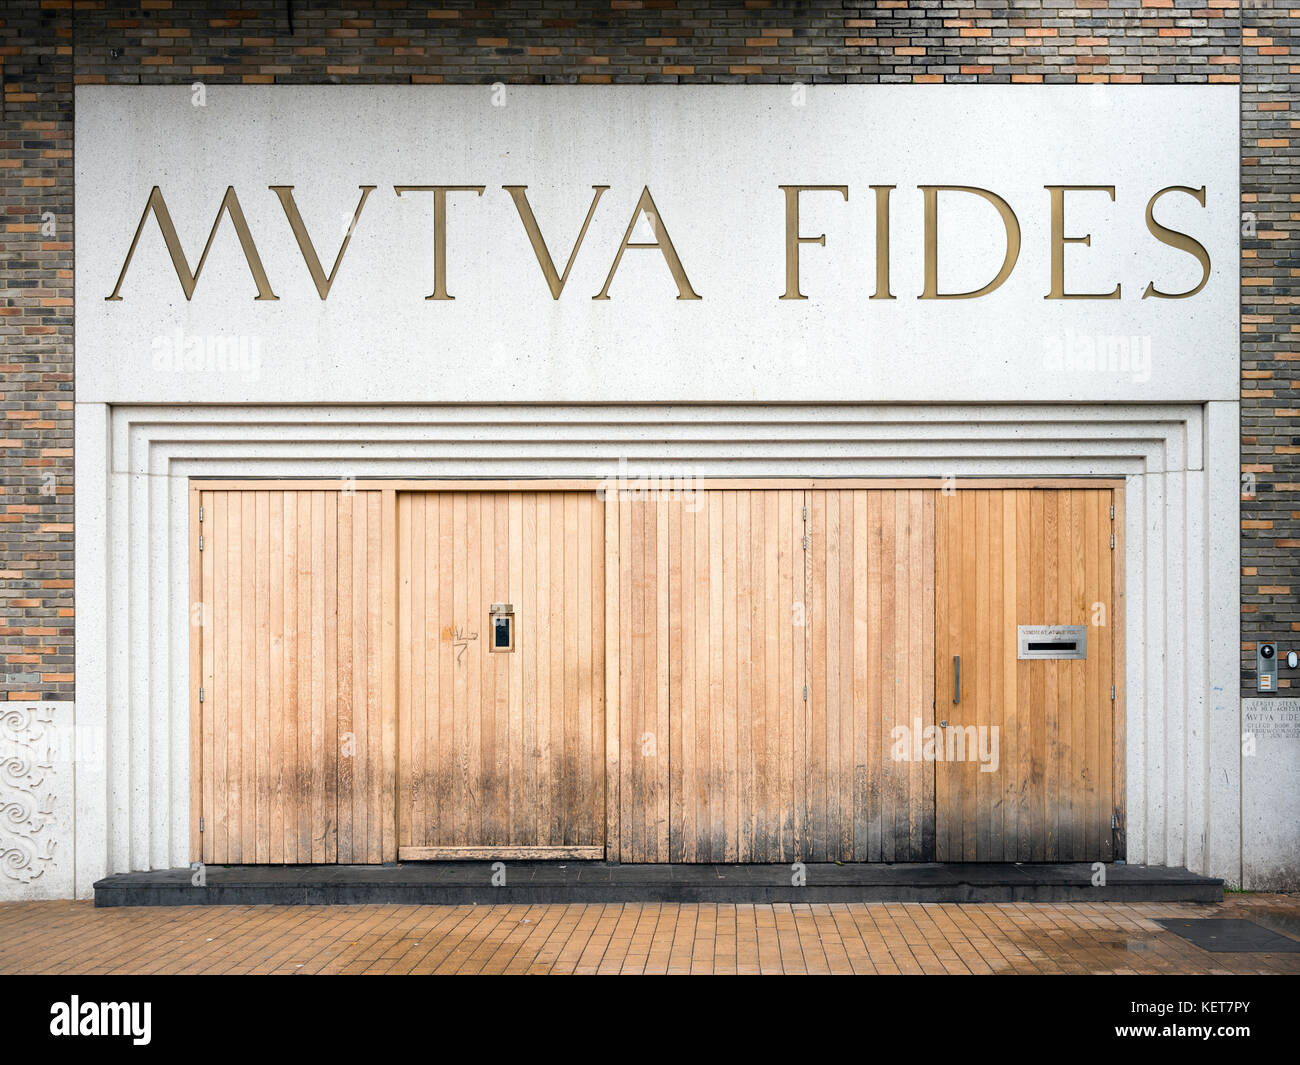 entrance to university student club mutua fides in the city of groningen in the netherlands Stock Photo